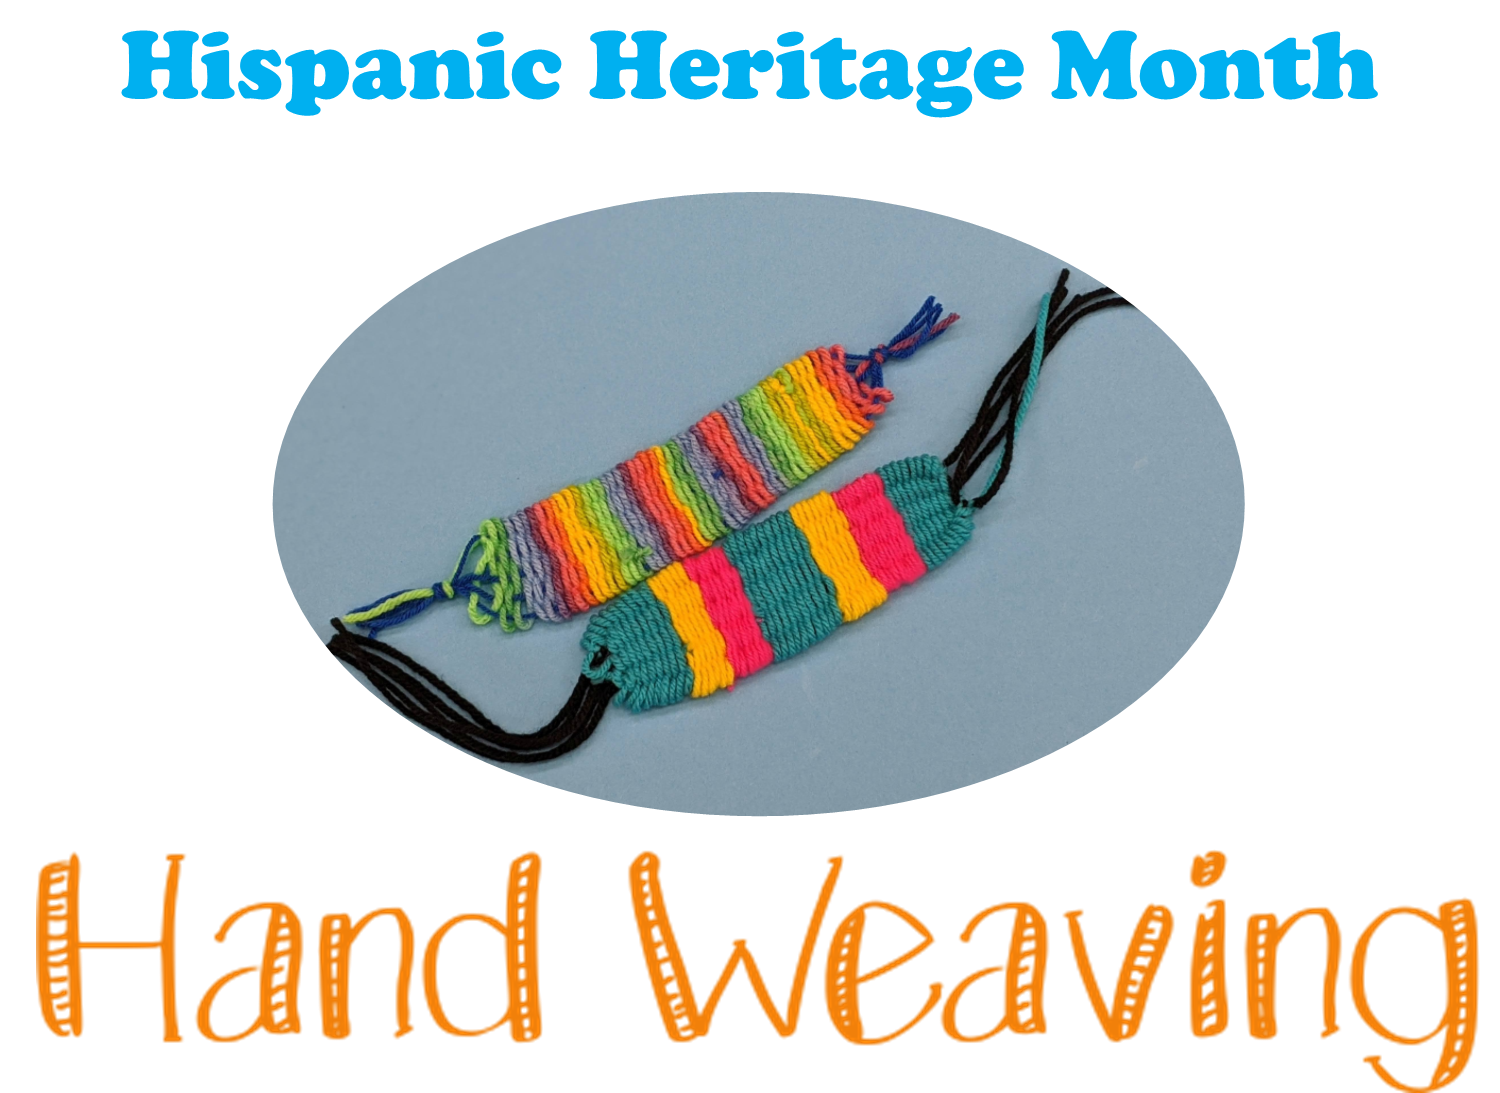 Hand weaving craft kits will be available for curbside pick up starting Sept. 21st at the Main Library